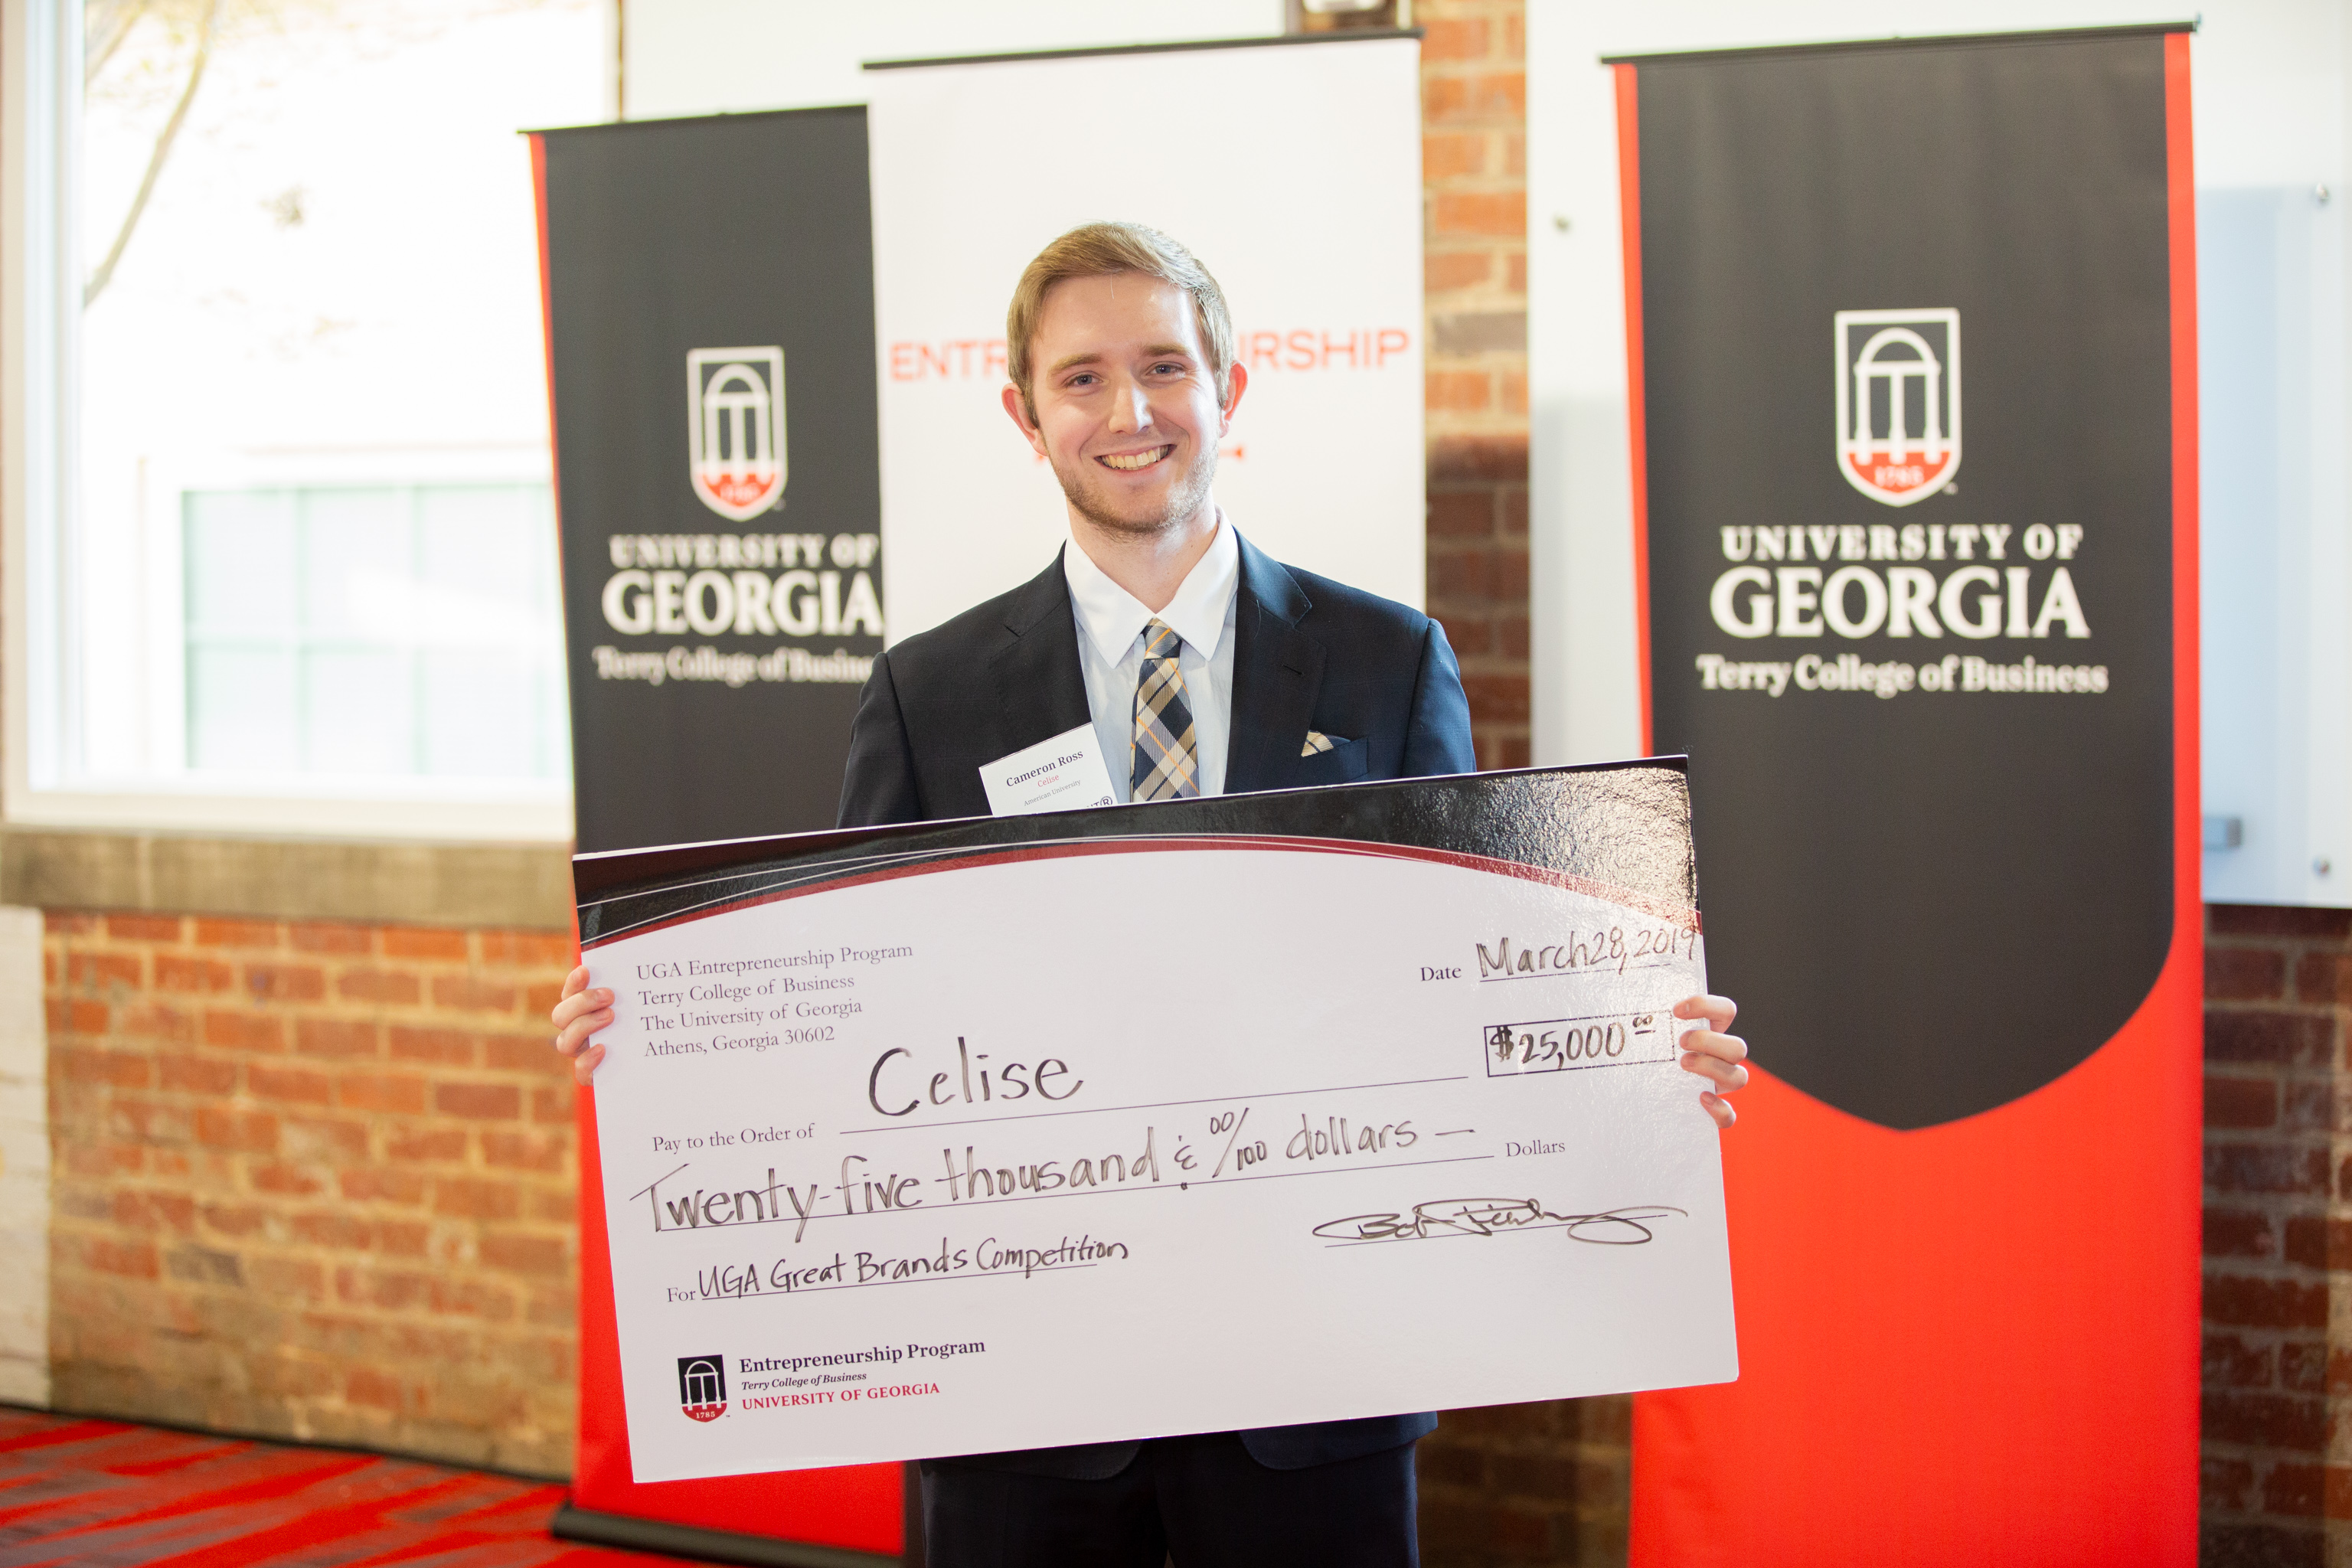 Cameron Ross, an American University student and founder of Celise, holds the first-place check for $25,000 at the Collegiate Great Brands Competition.